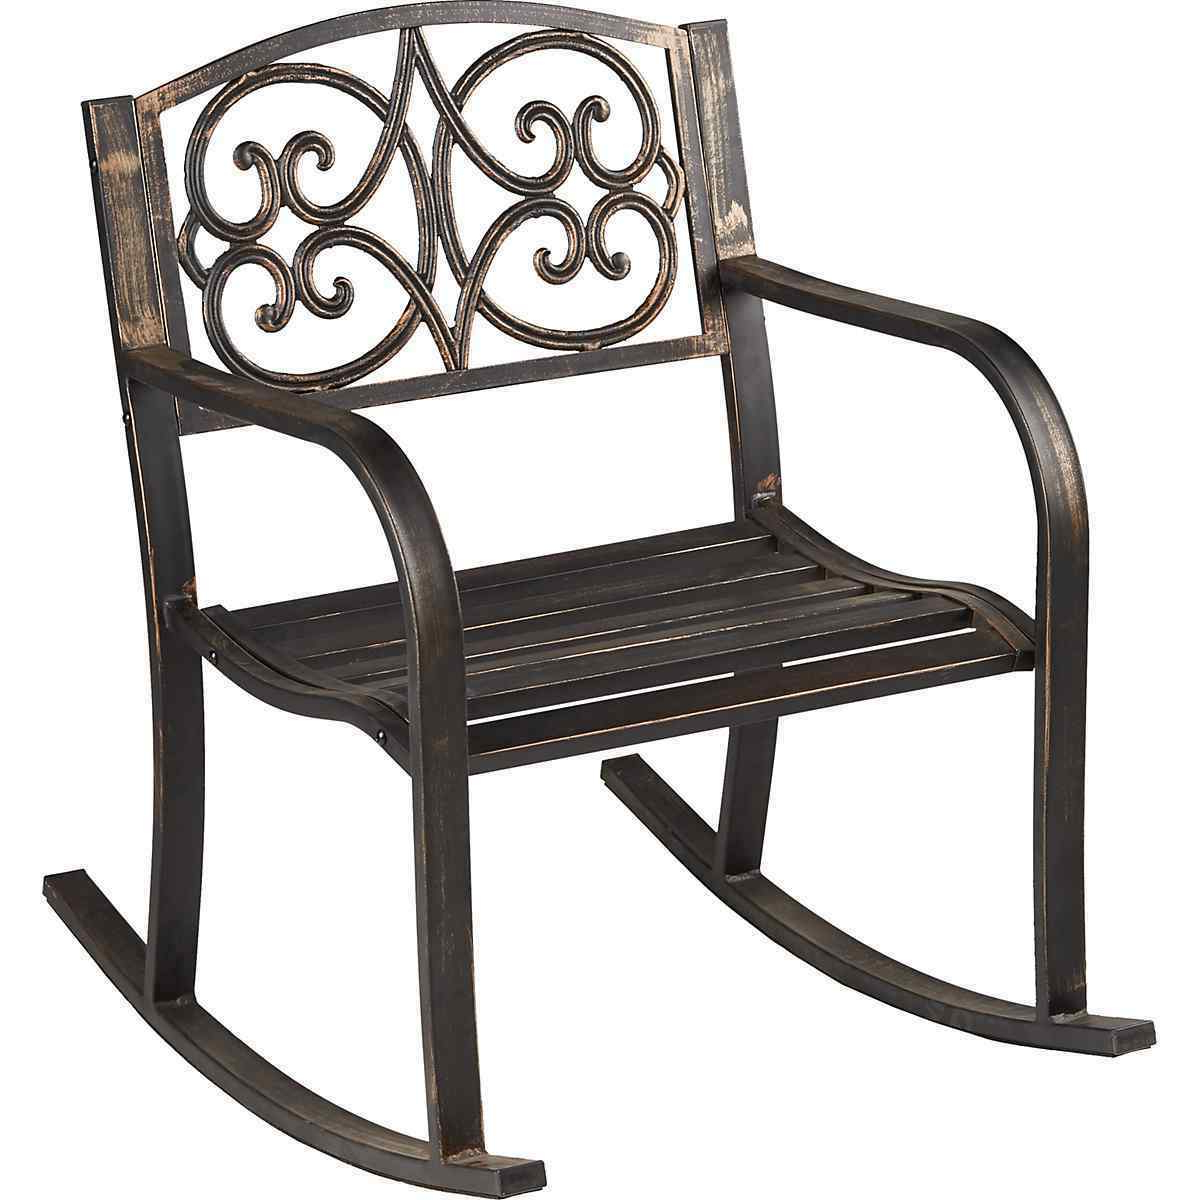 Favorite Outdoor Rocking Chair Patio Metal Rocker Porch Garden Furniture Deck Yard Seat Regarding 1 Person Antique Black Steel Outdoor Gliders (View 22 of 30)